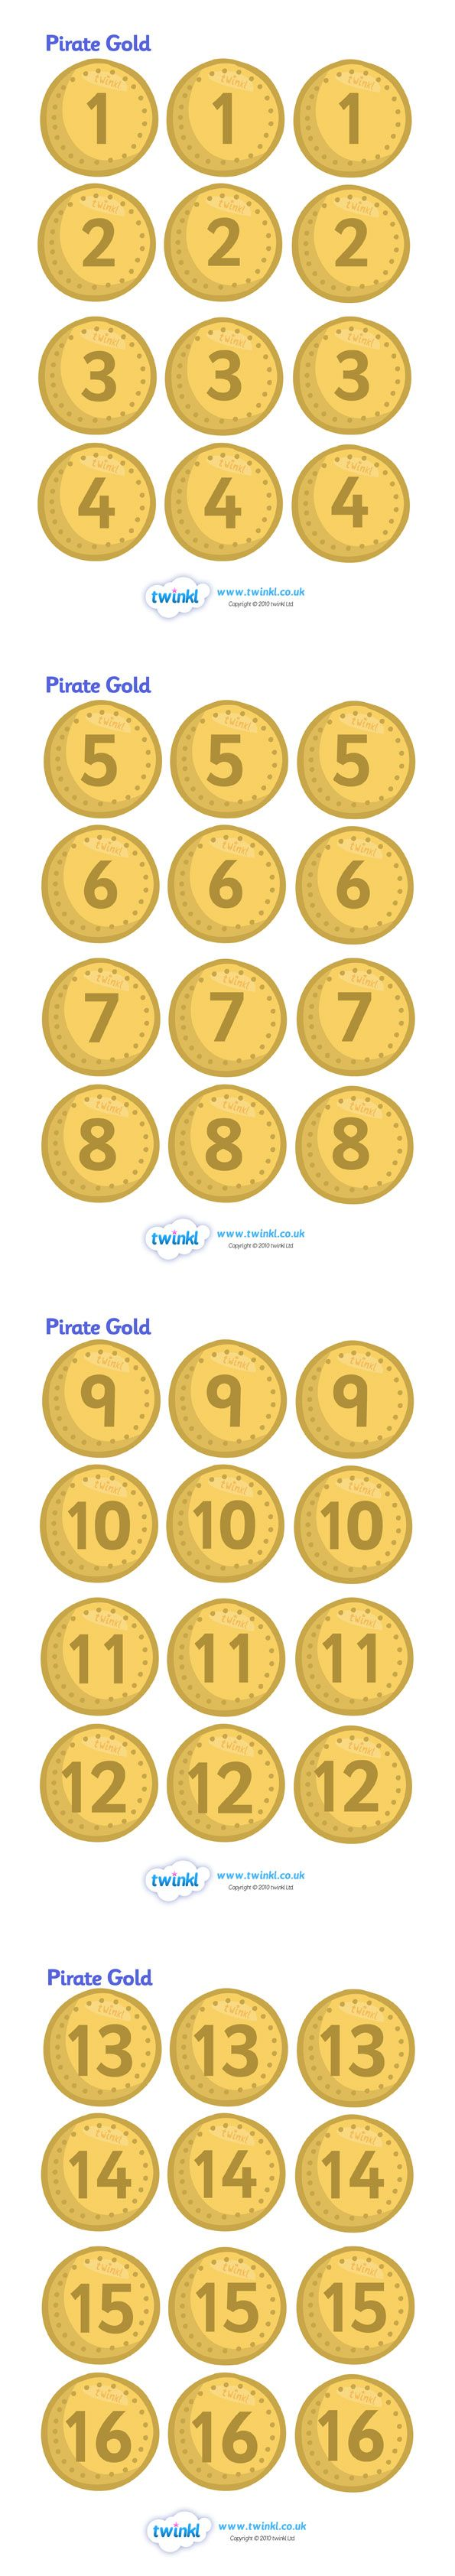 Twinkl Resources  Pirate Coins   Thousands of printable primary teaching resources for EYFS, KS1, KS2 and beyond! coins, money, treasure, numeracy, math, addition, subtraction, activity, pirate, pirate themed, treasure, pirate ship, parrot, treasure chest, jolly roger, ship, island, ocean,